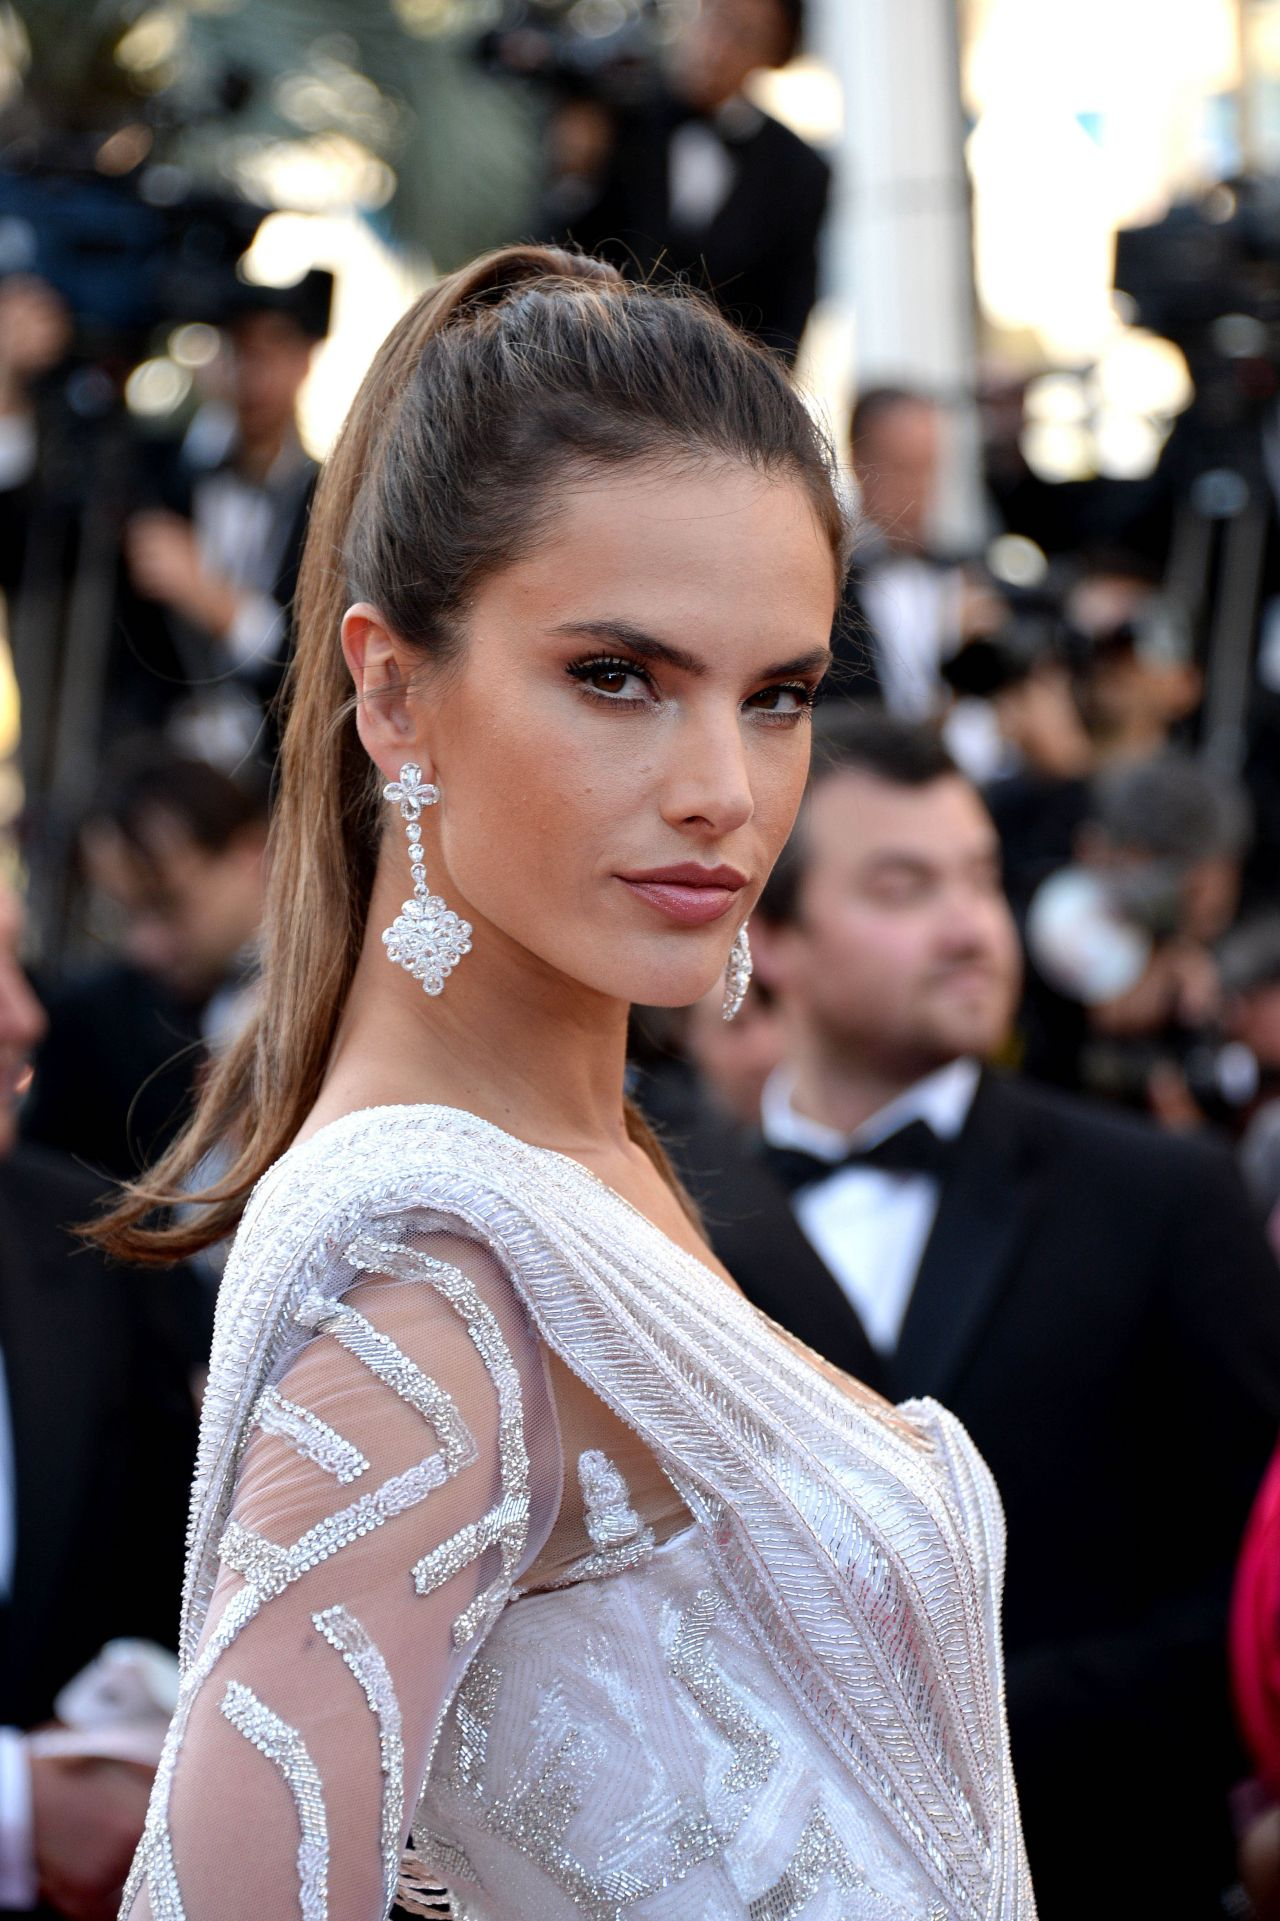 Alessandra Ambrosio high sleek ponytail hairstyles